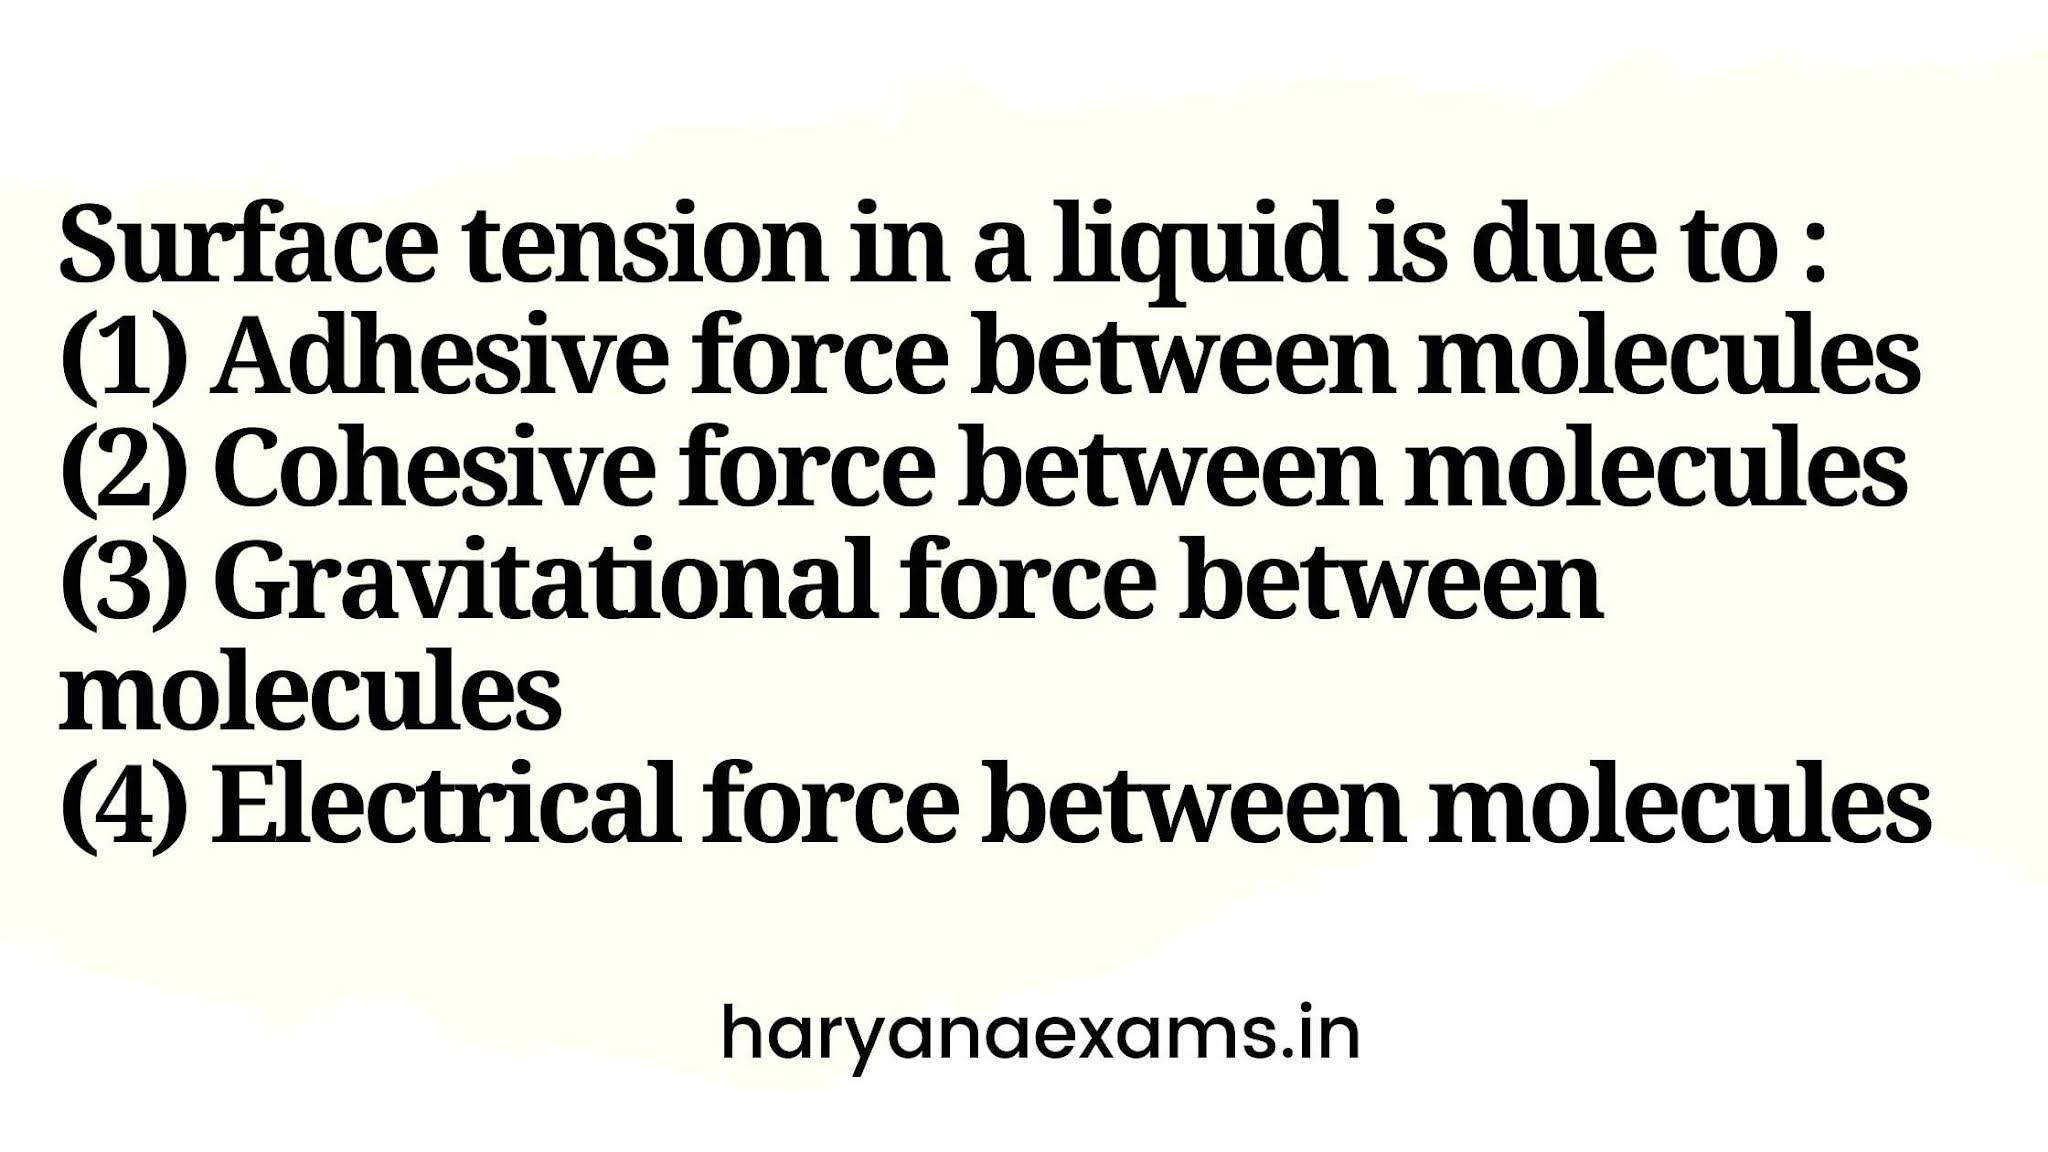 Surface tension in a liquid is due to :   (1) Adhesive force between molecules   (2) Cohesive force between molecules   (3) Gravitational force between molecules   (4) Electrical force between molecules